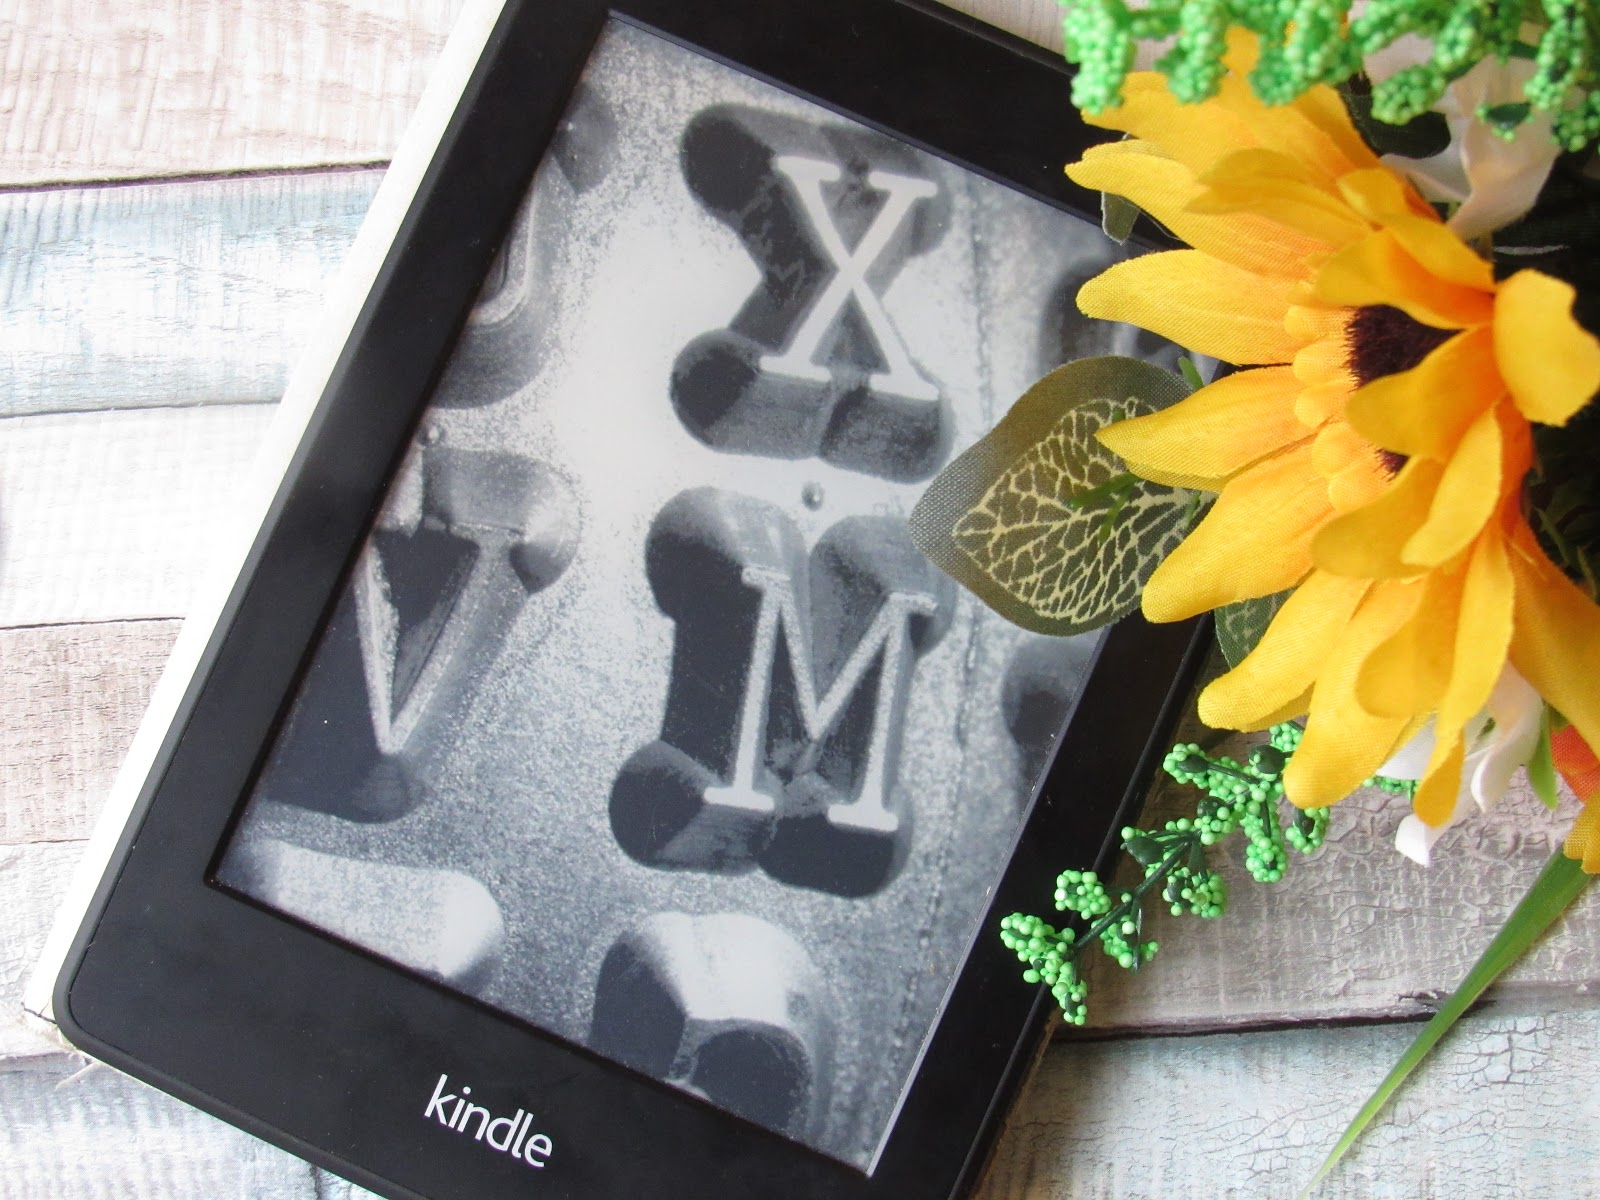 Kindle and sunflowers